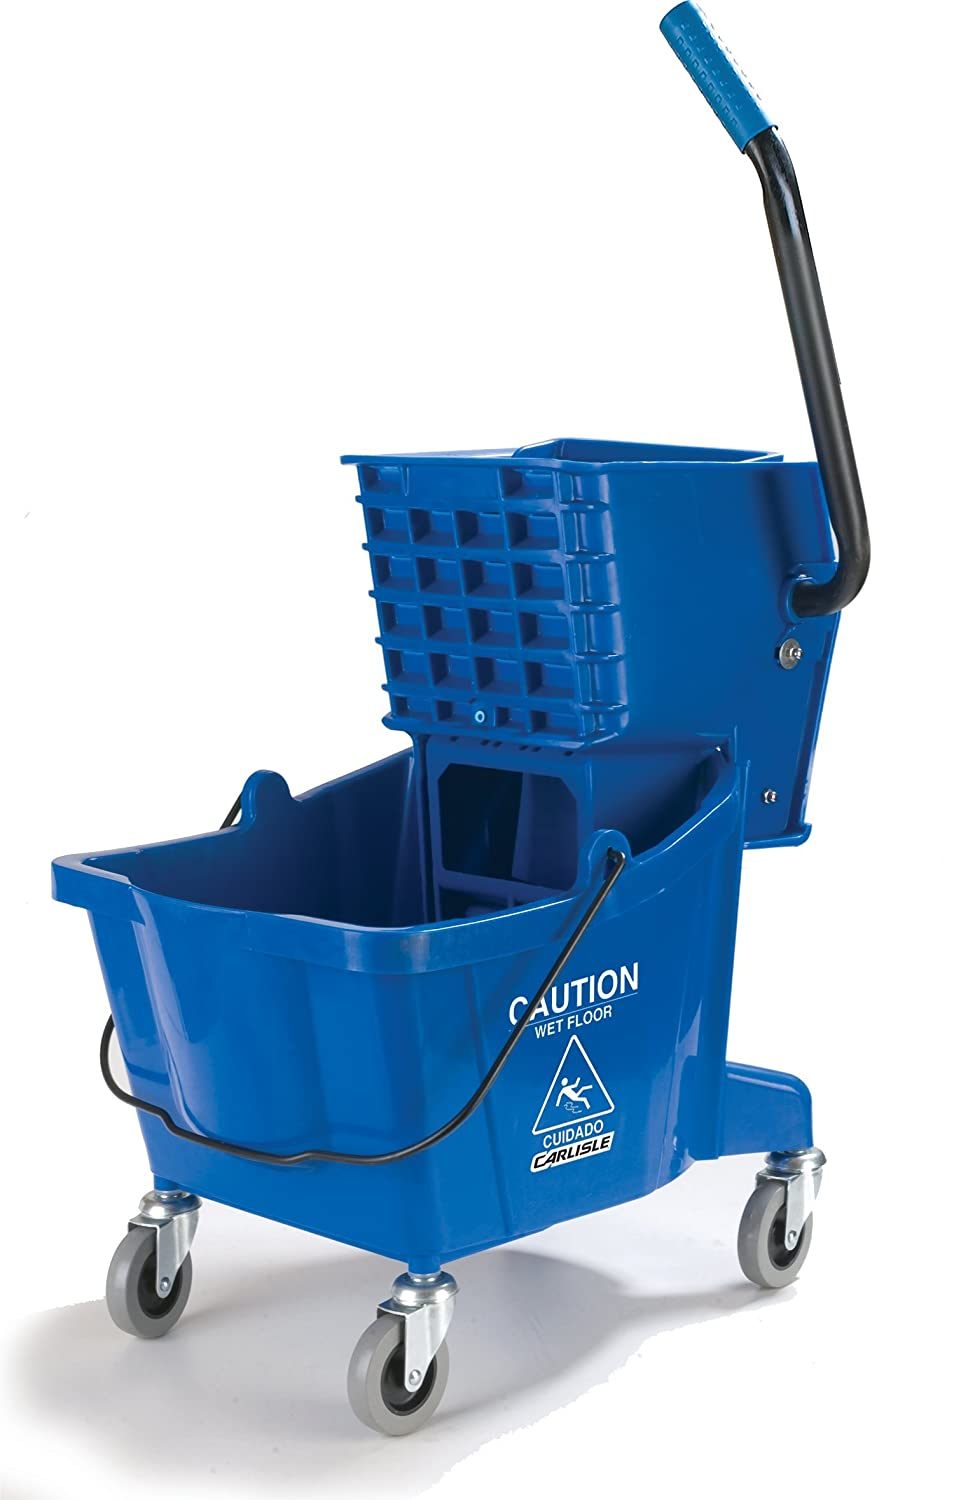 Carlisle 3690814 Commercial Mop Bucket with Side Press Wringer, 26 Quart Capacity, Blue